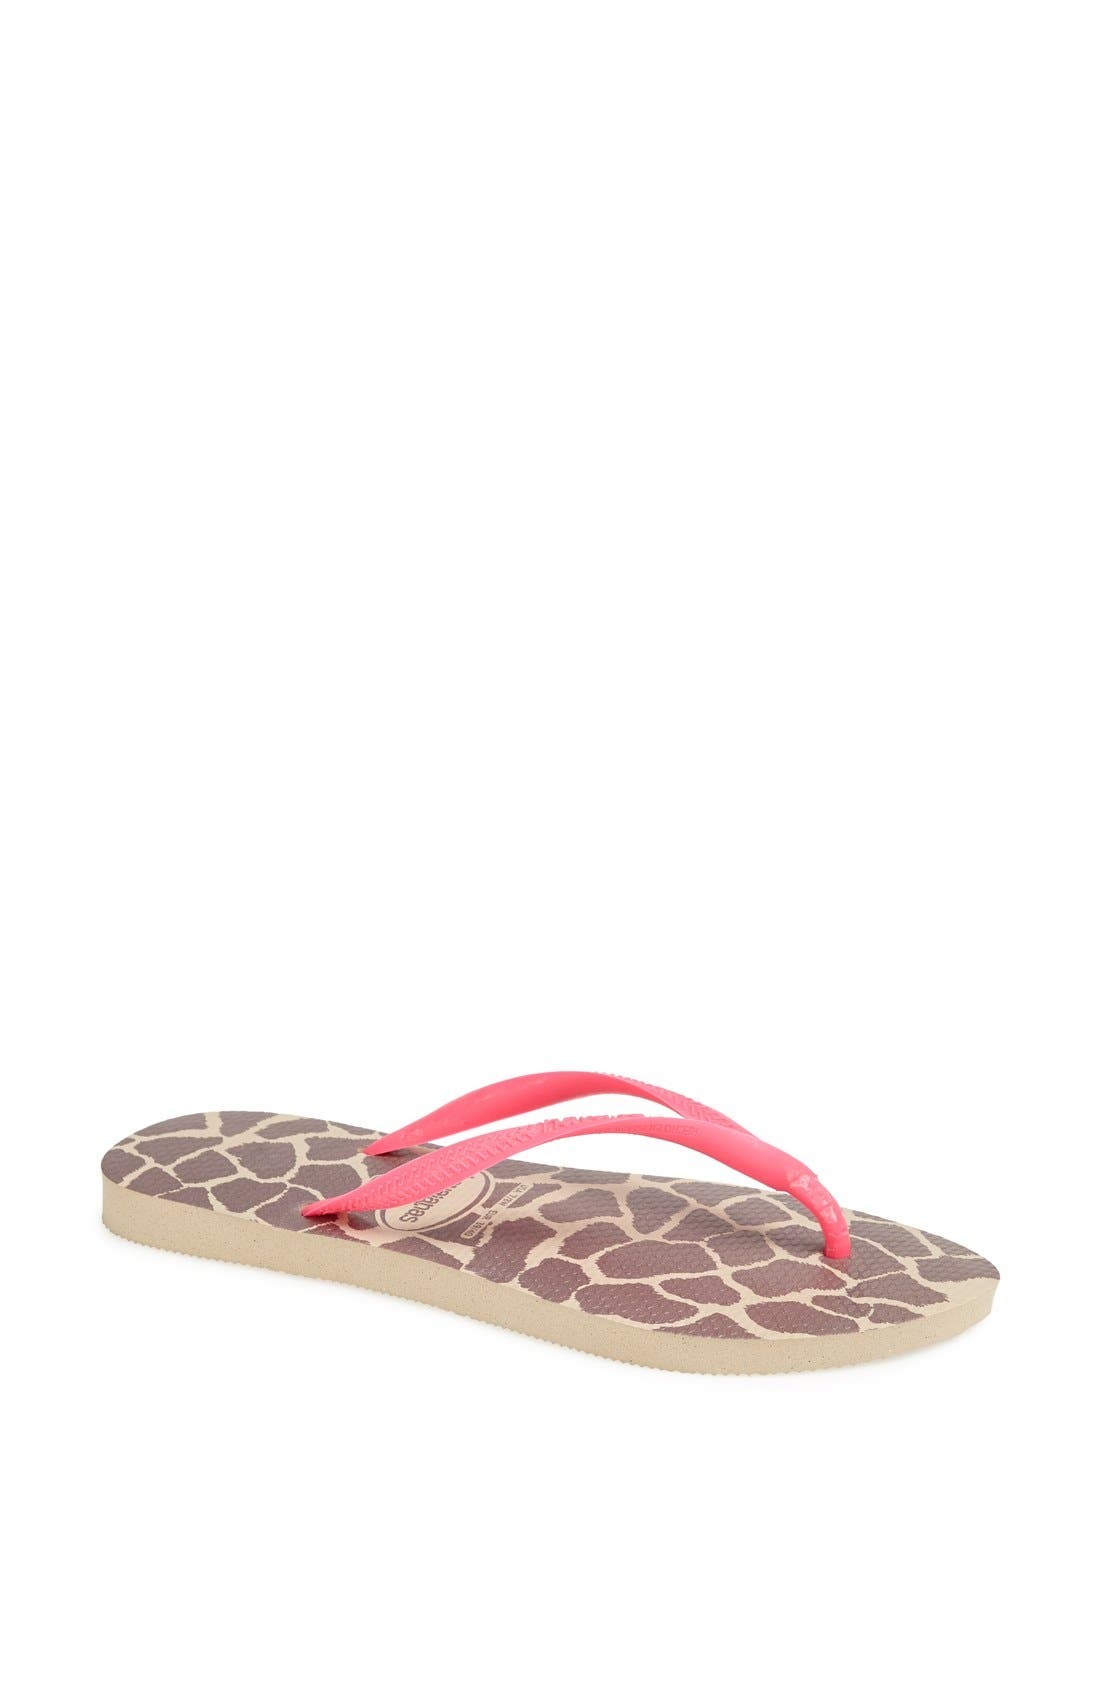 Alternate Image 1 Selected - Havaianas 'Slim Fluorescent Animal' Sandal (Women)